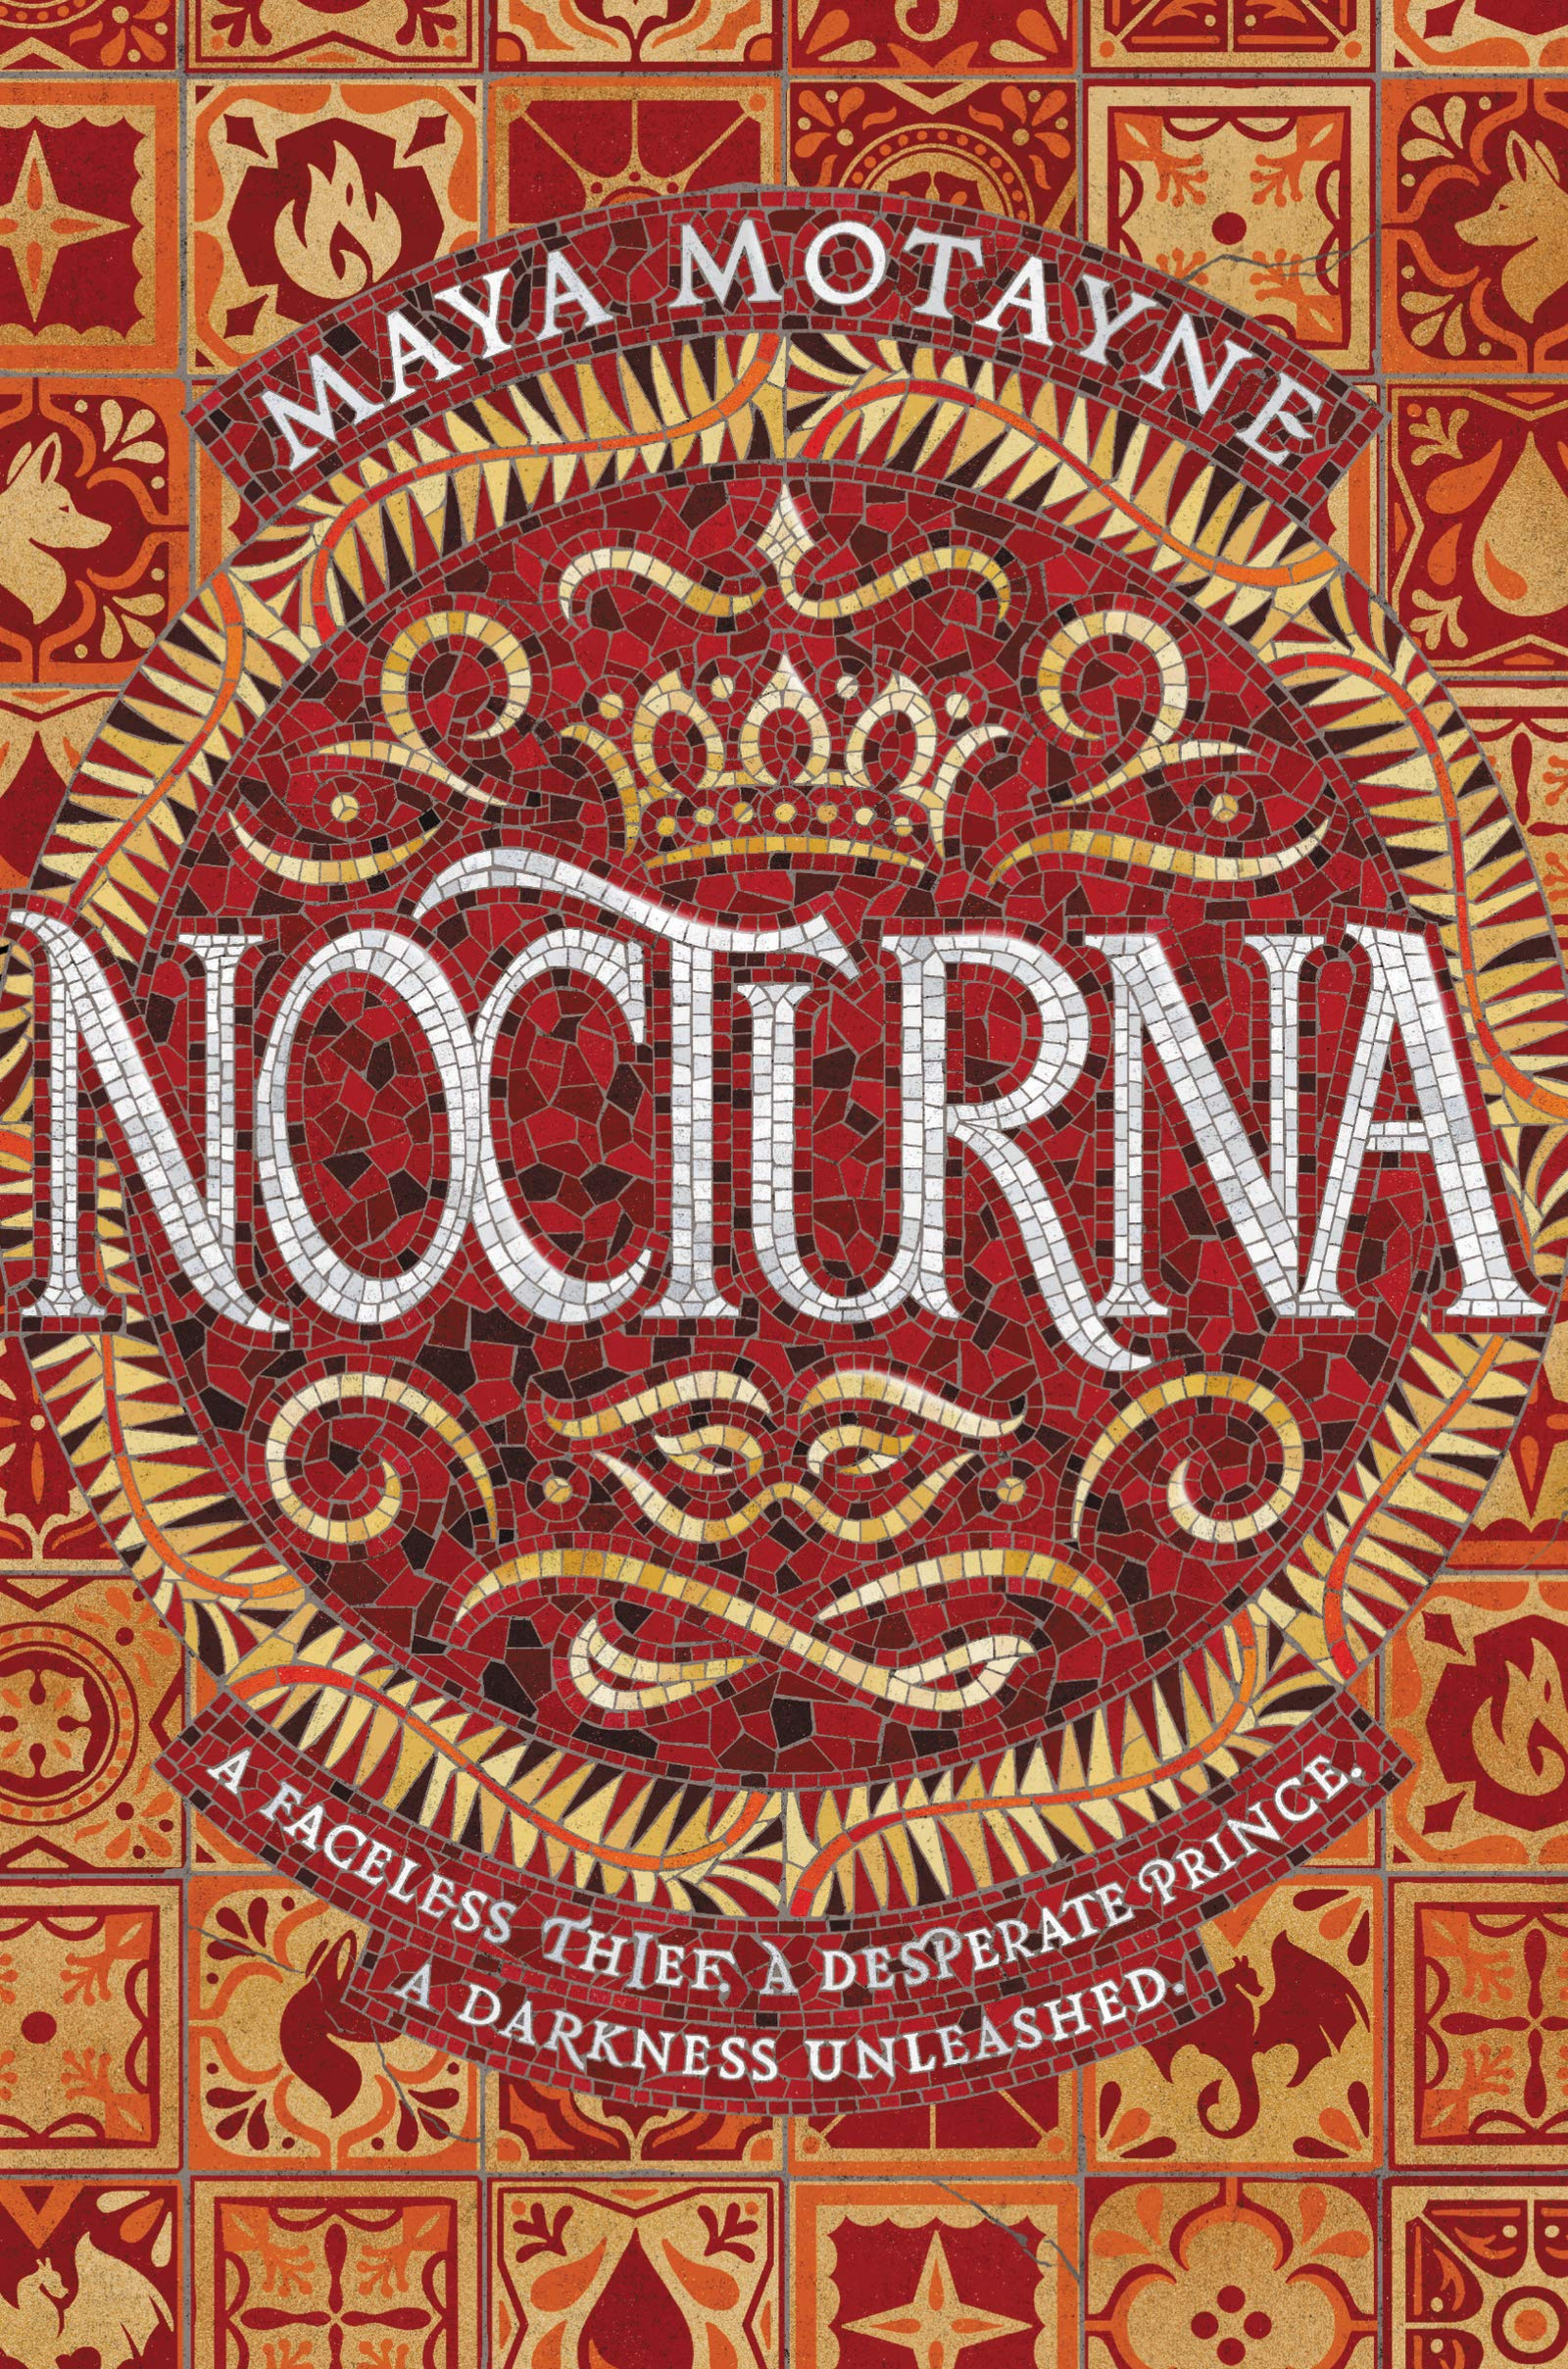 Amazon.com: Nocturna (9780062842732): Motayne, Maya: Books